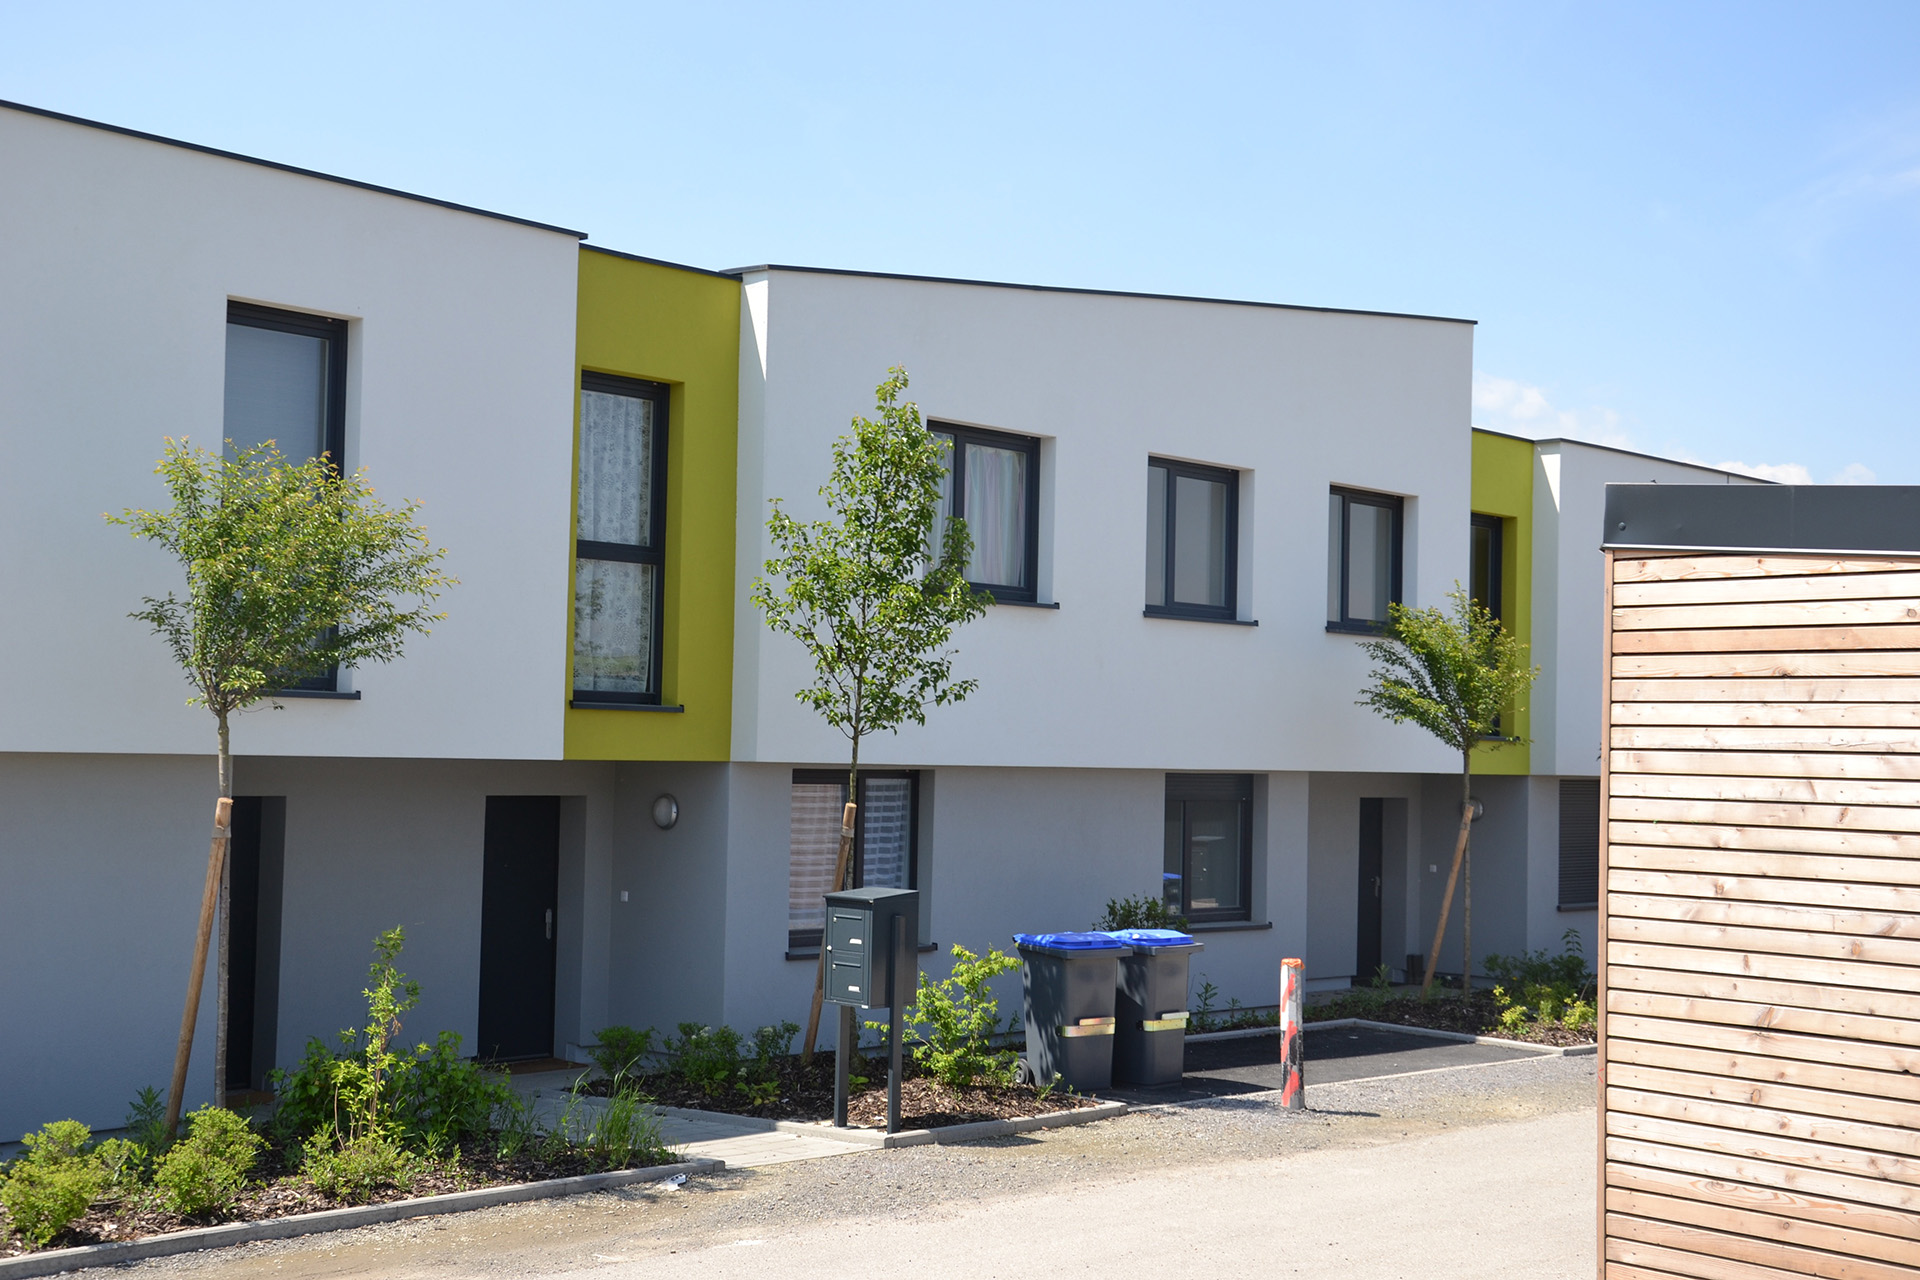 Ketplus 3b logements Lampertheim